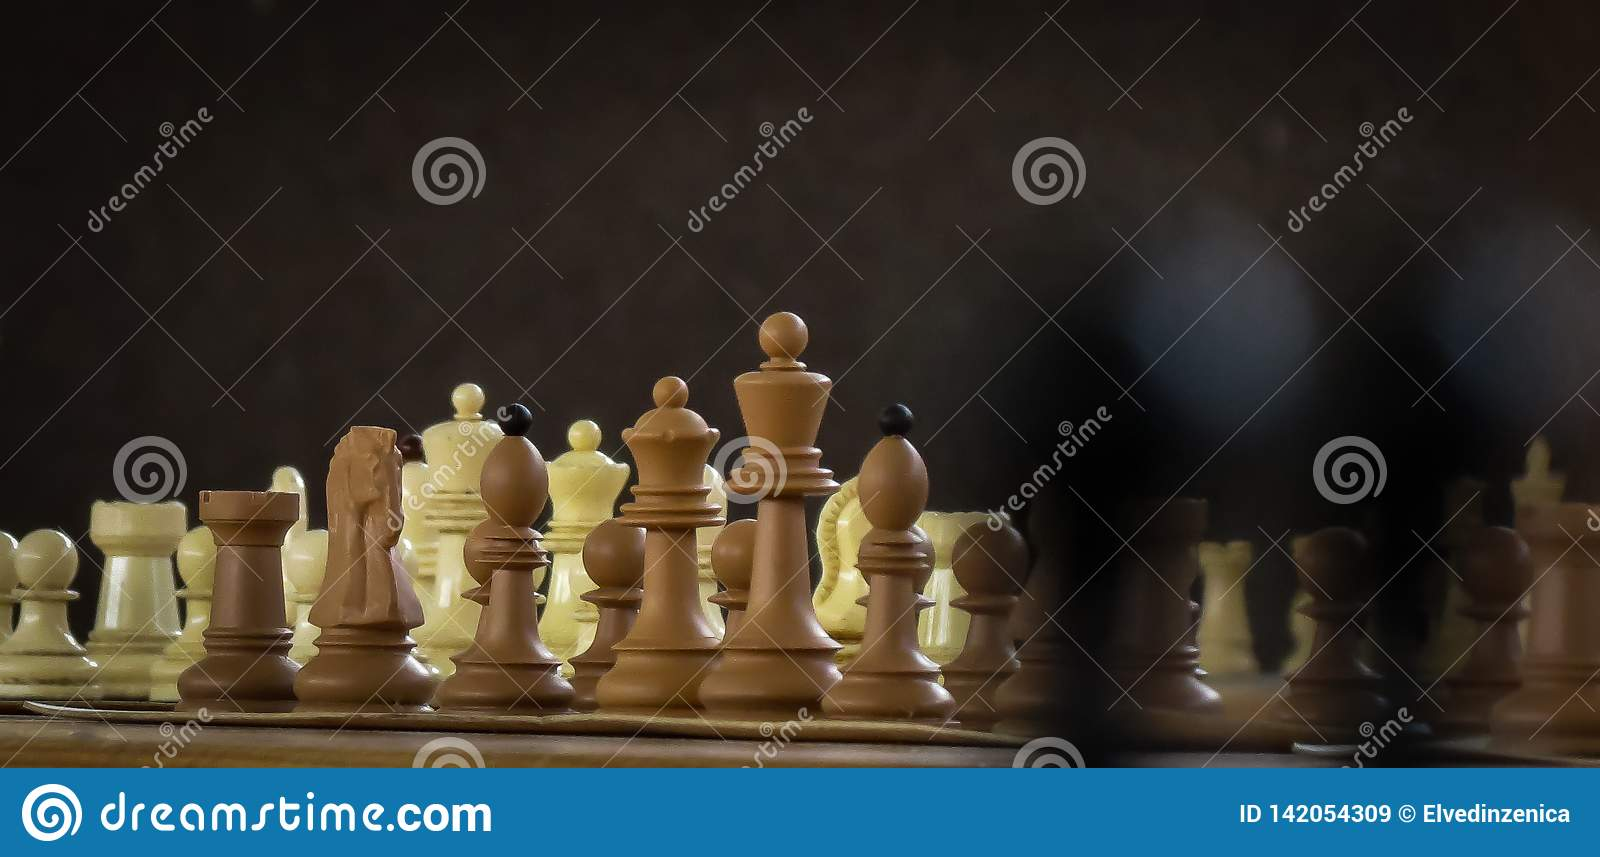 Chess figures set for challenge and match